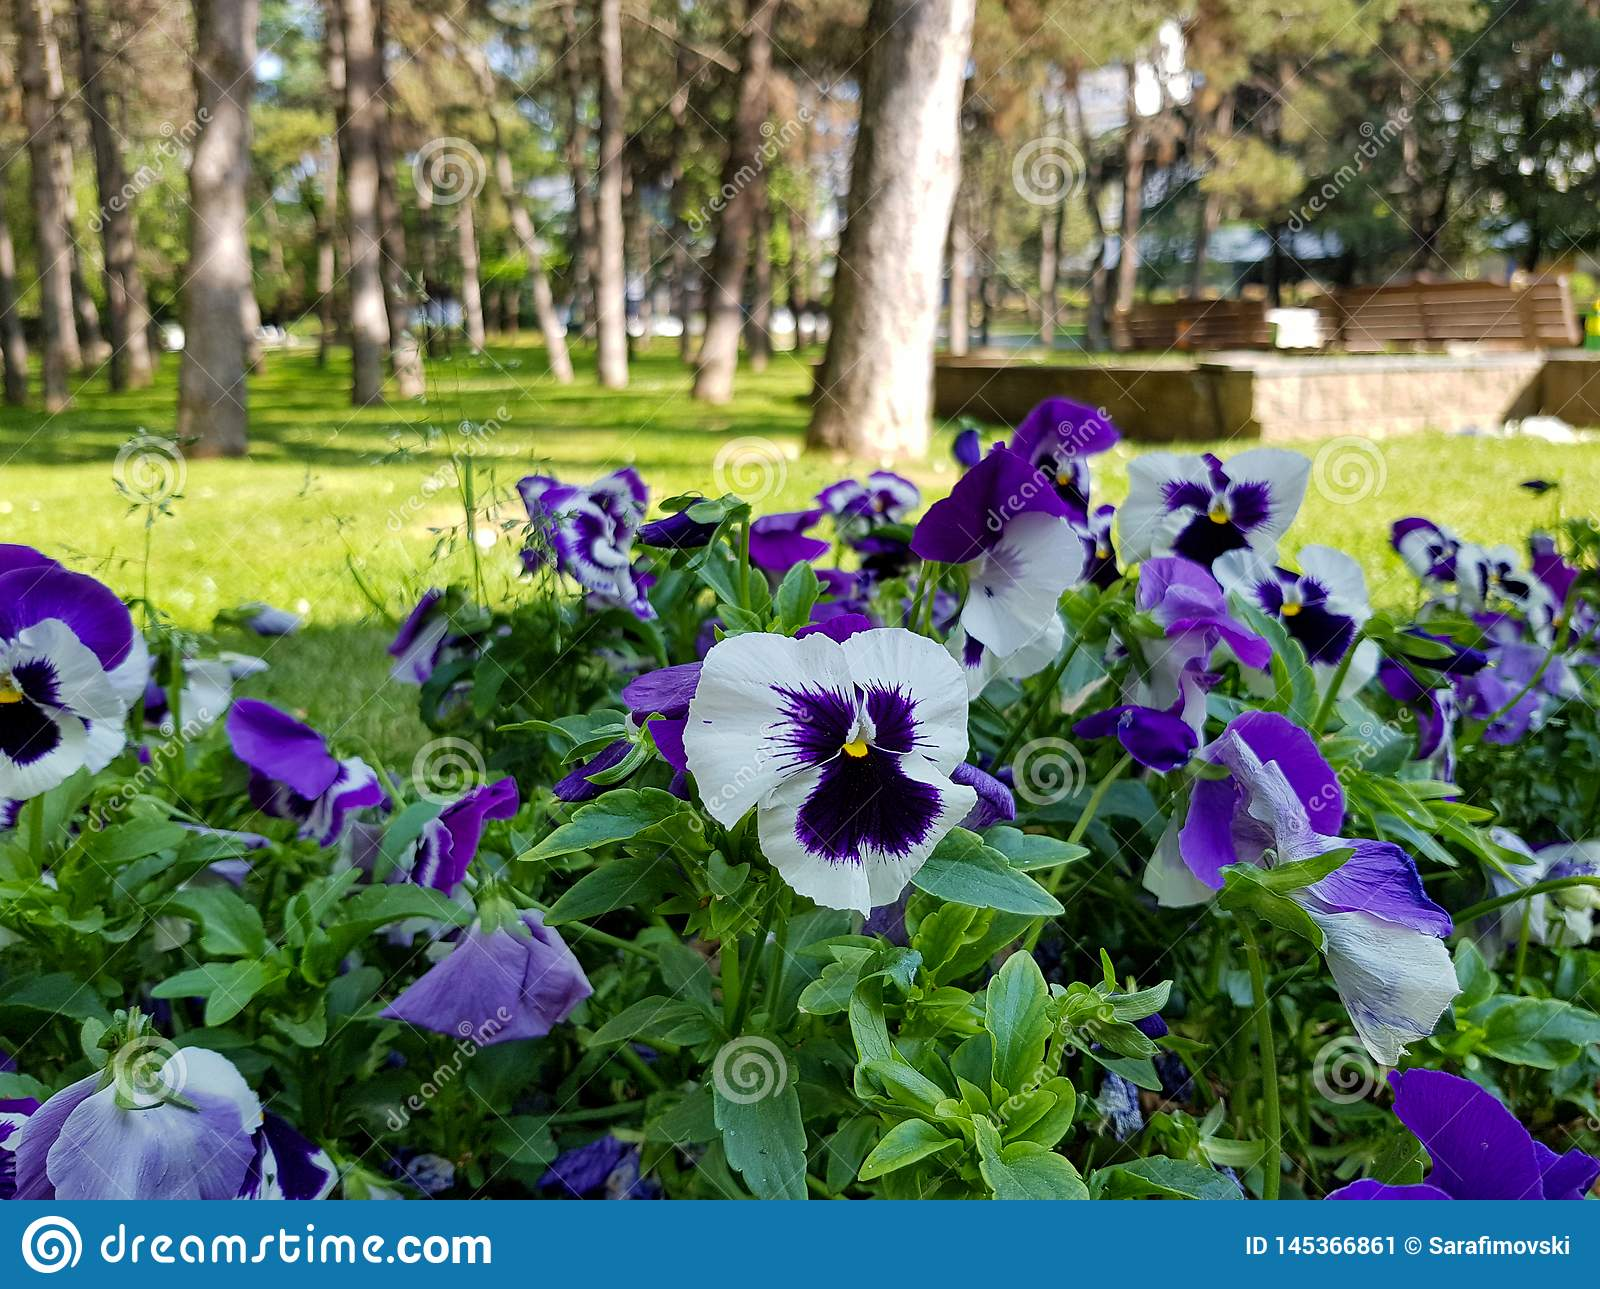 A photograph of beautiful flowers in city park.